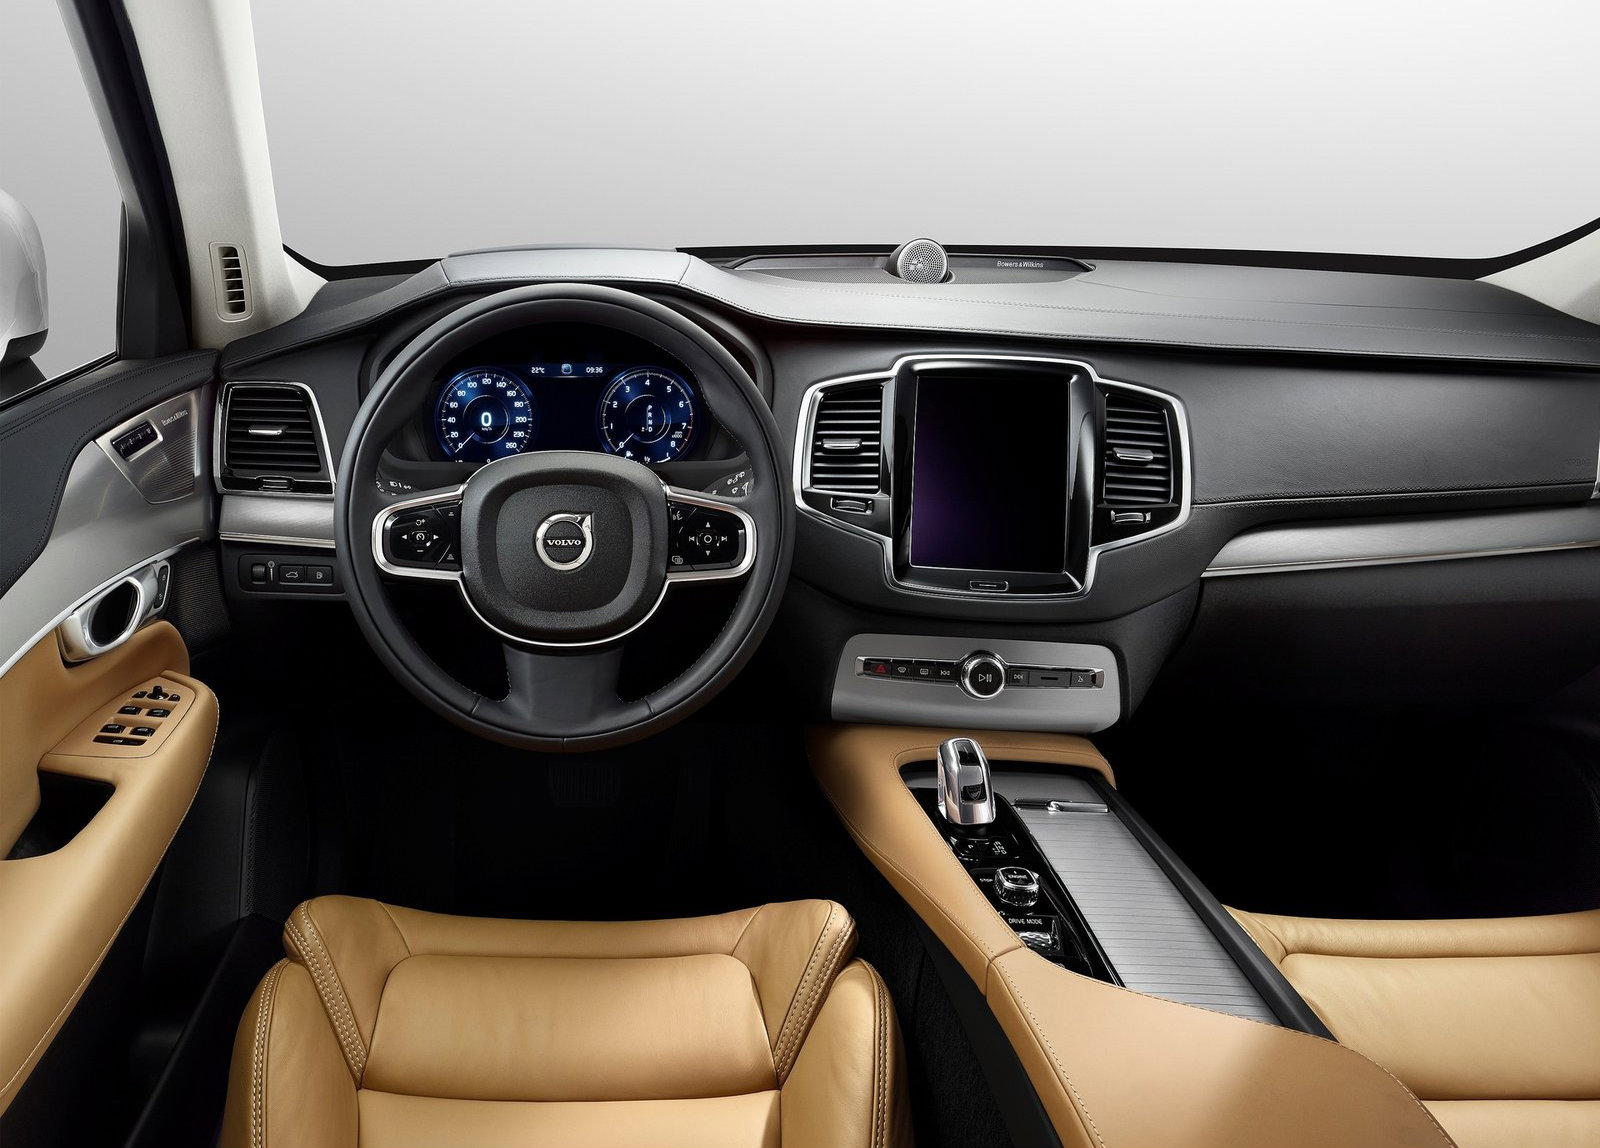 Used Volvo S60 >> 2015 Volvo XC90 Price List for Europe Announced, It Starts from €59,472 - autoevolution